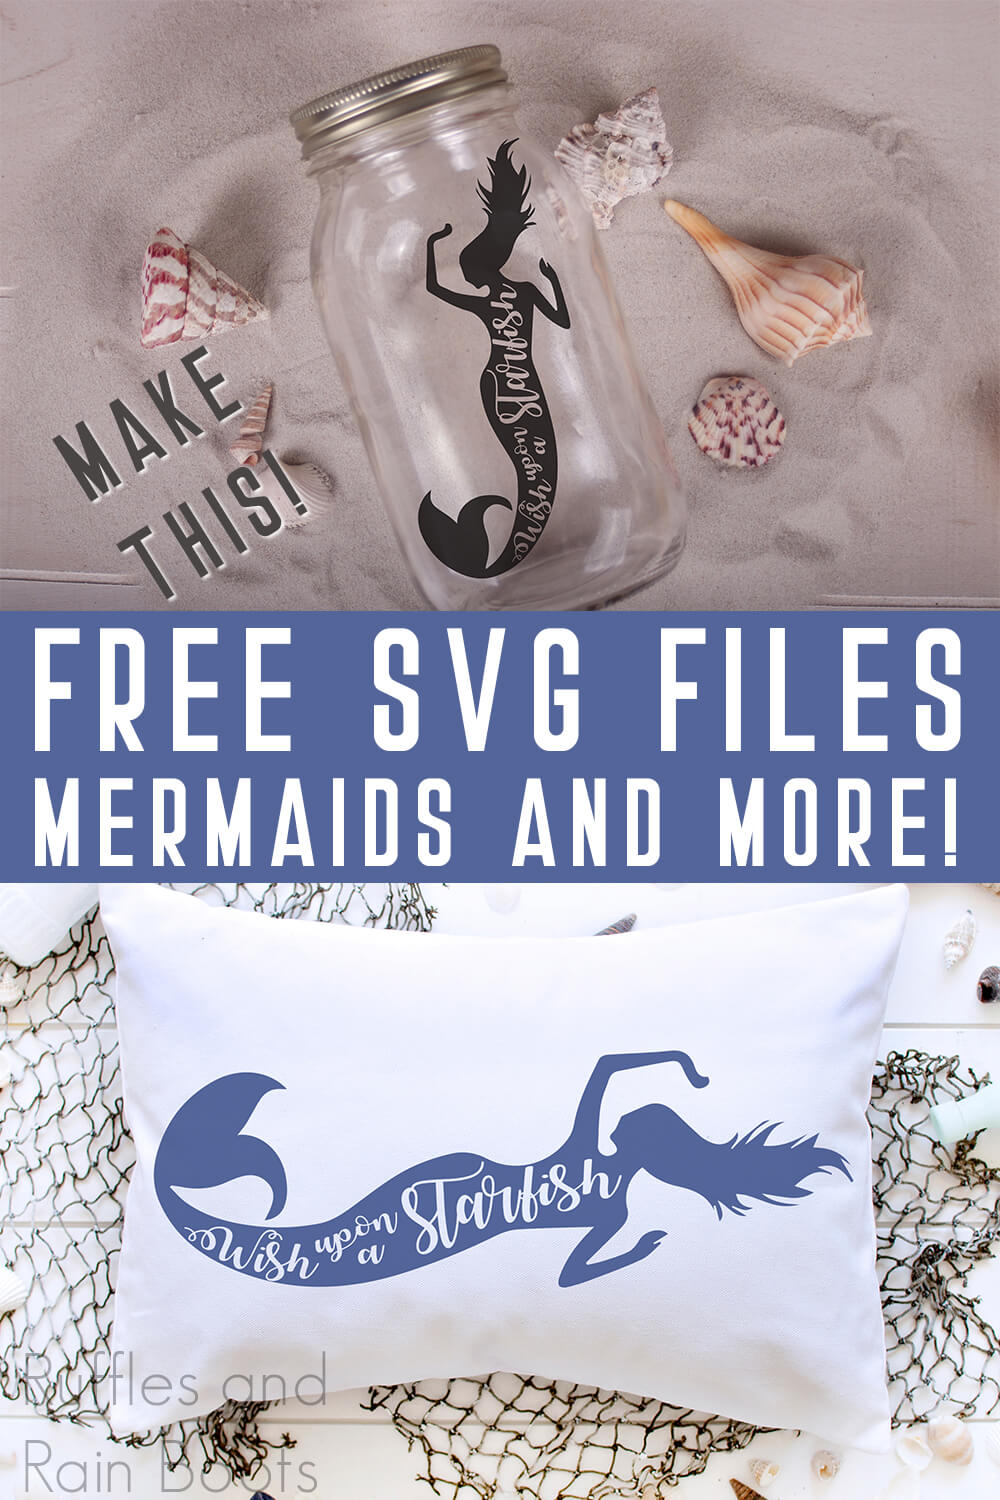 photo collage of mermaid cut files for cricut with text which reads make this! free svg files mermaids and more